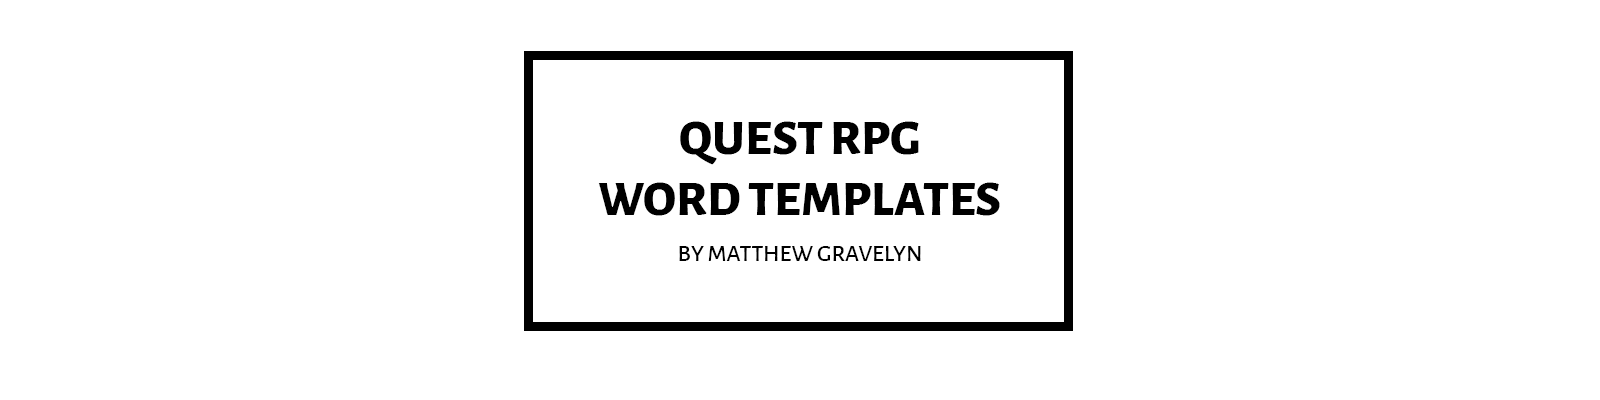 Quest RPG Templates for MS Word